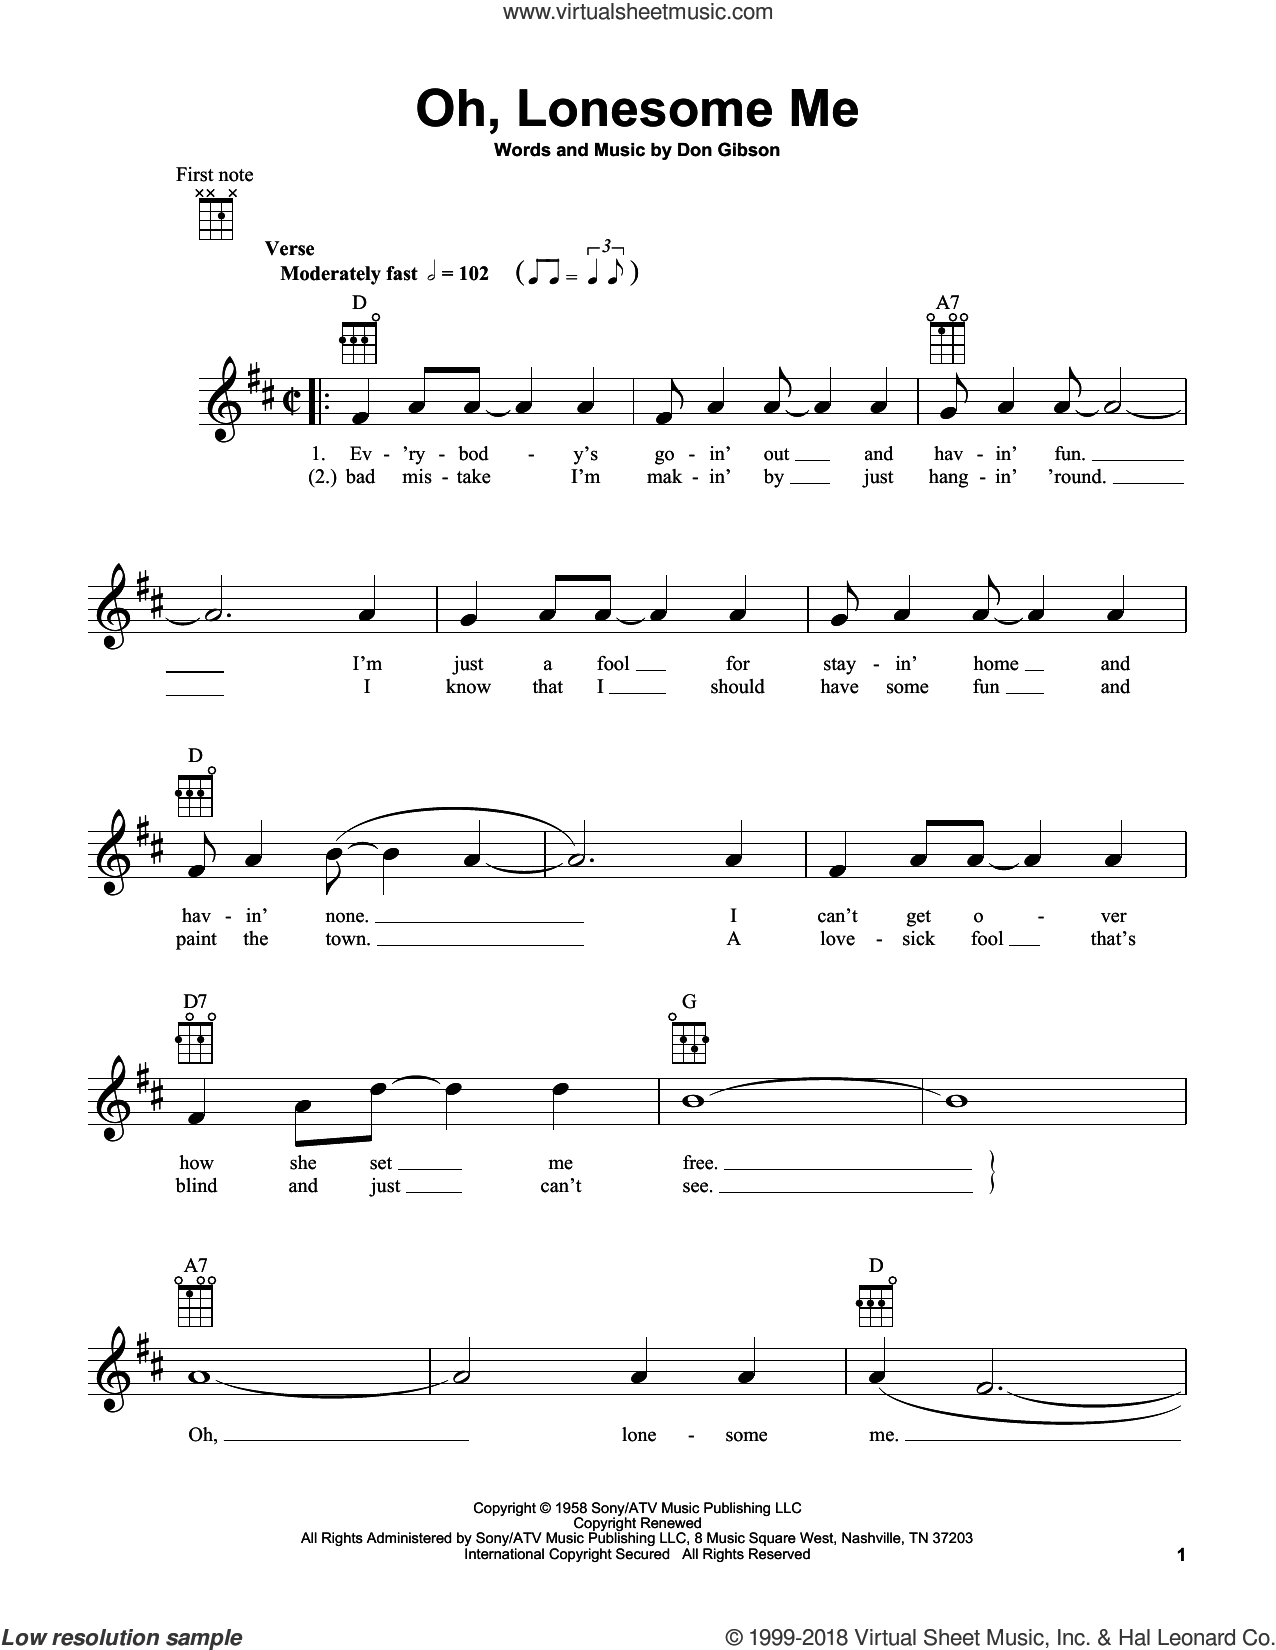 Oh, Lonesome Me sheet music for ukulele by Don Gibson, intermediate skill level